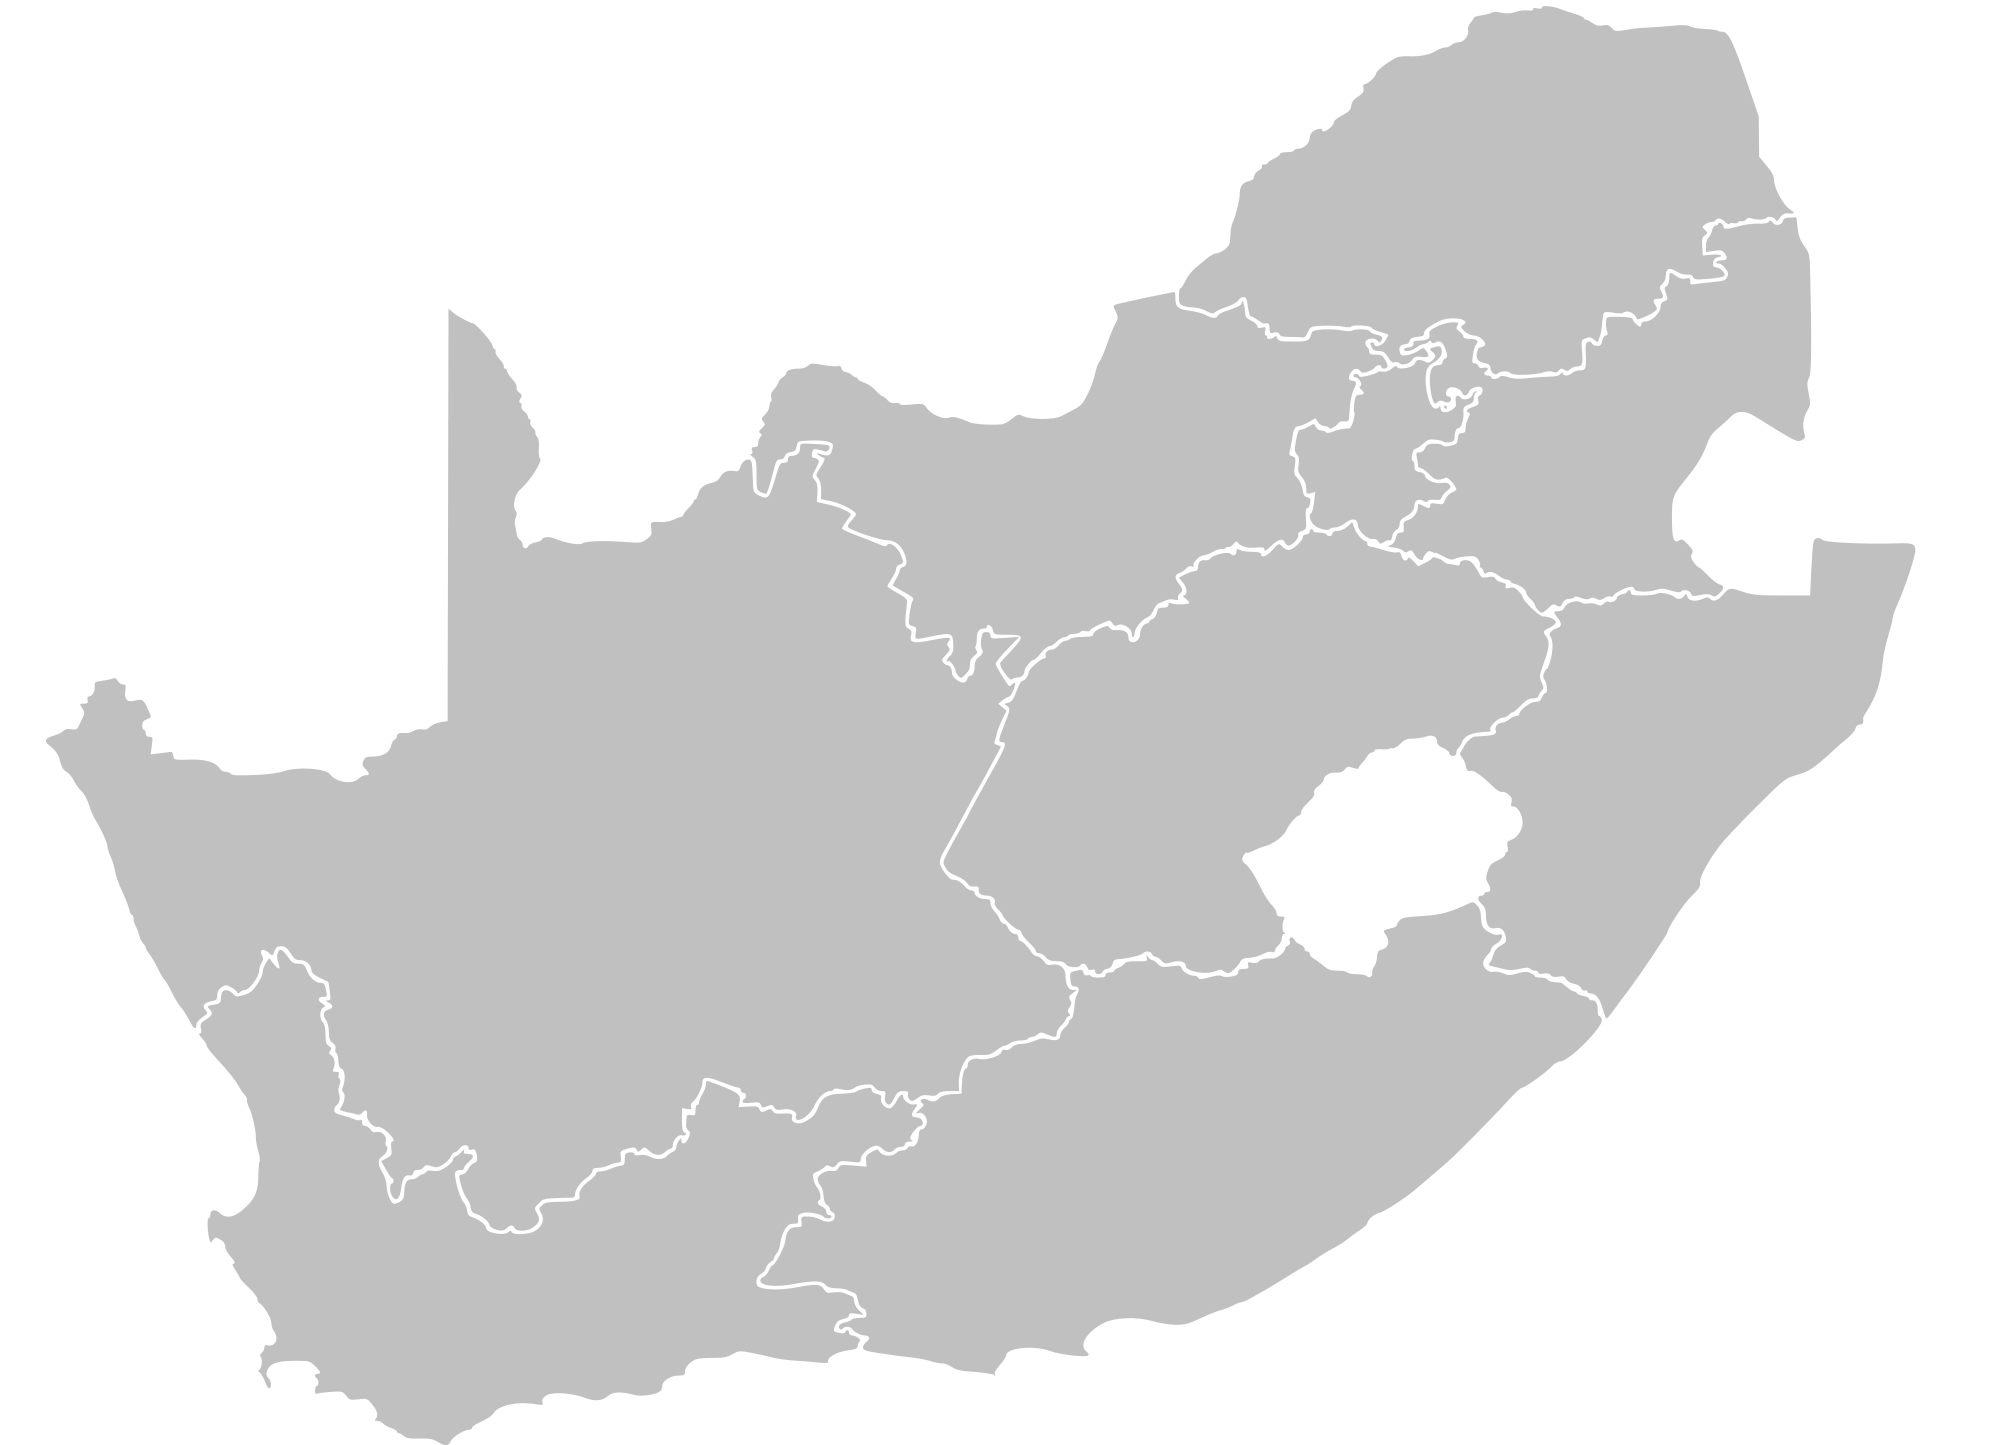 Clipart map generic. File south africa blank